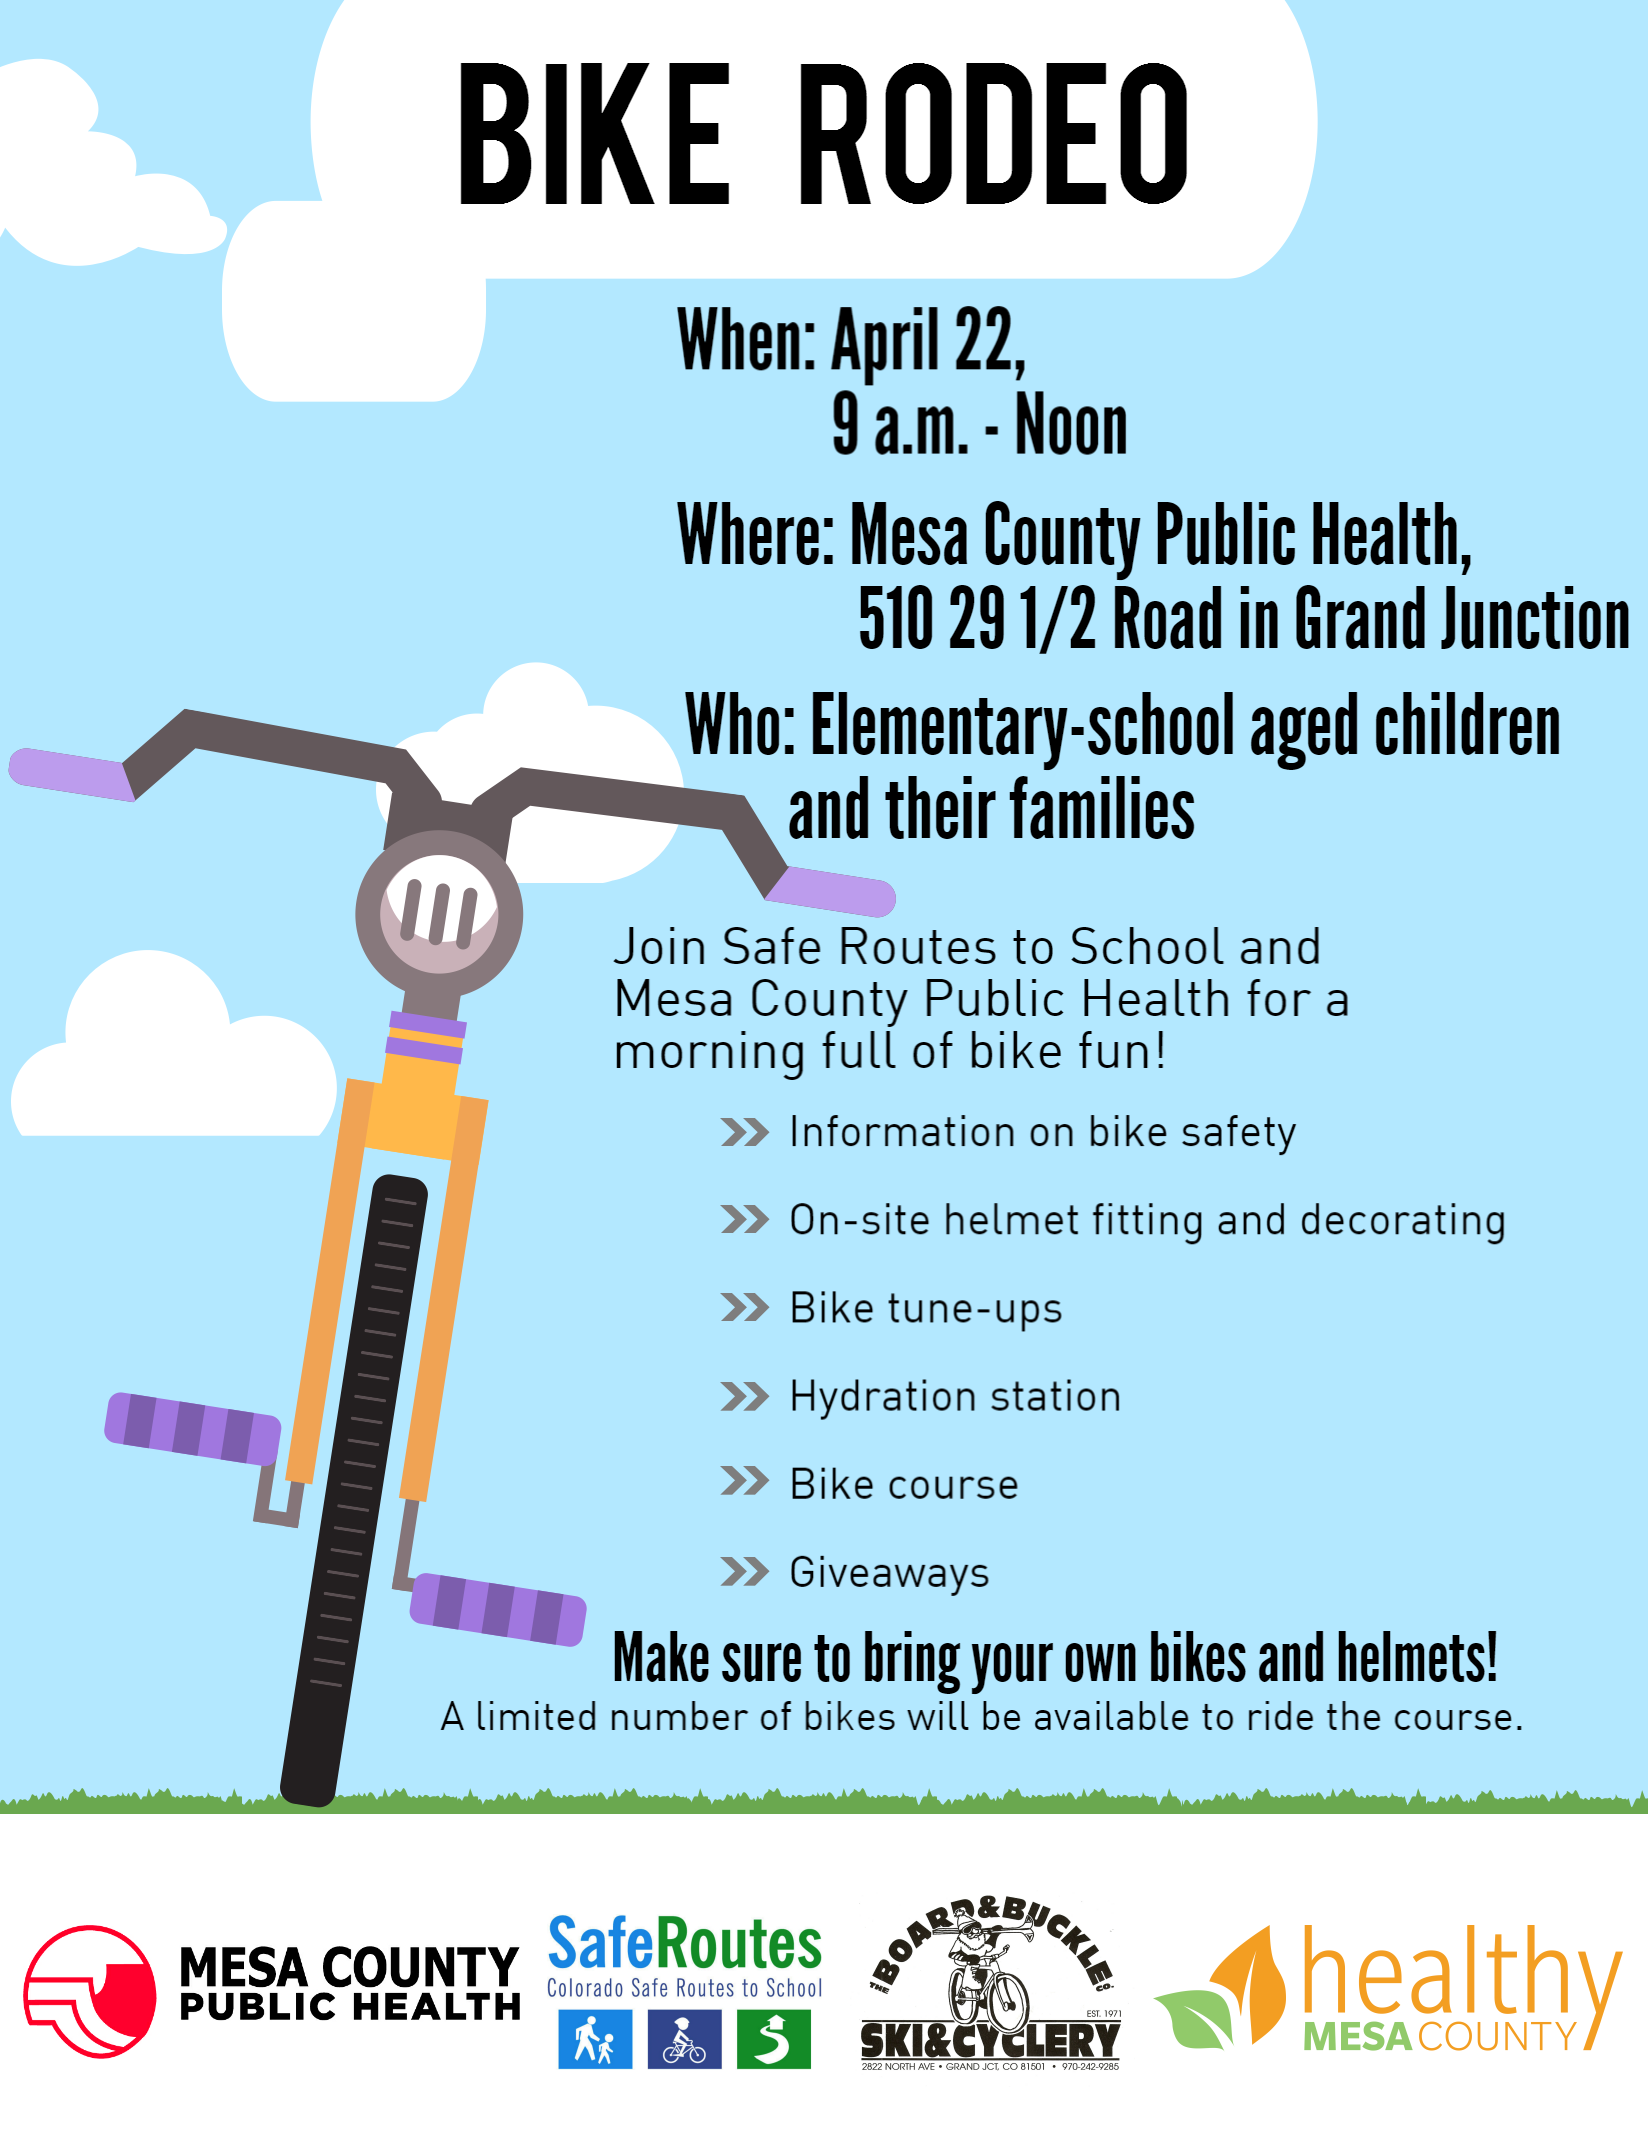 Bike rodeo offers families a morning full of bike fun and safety